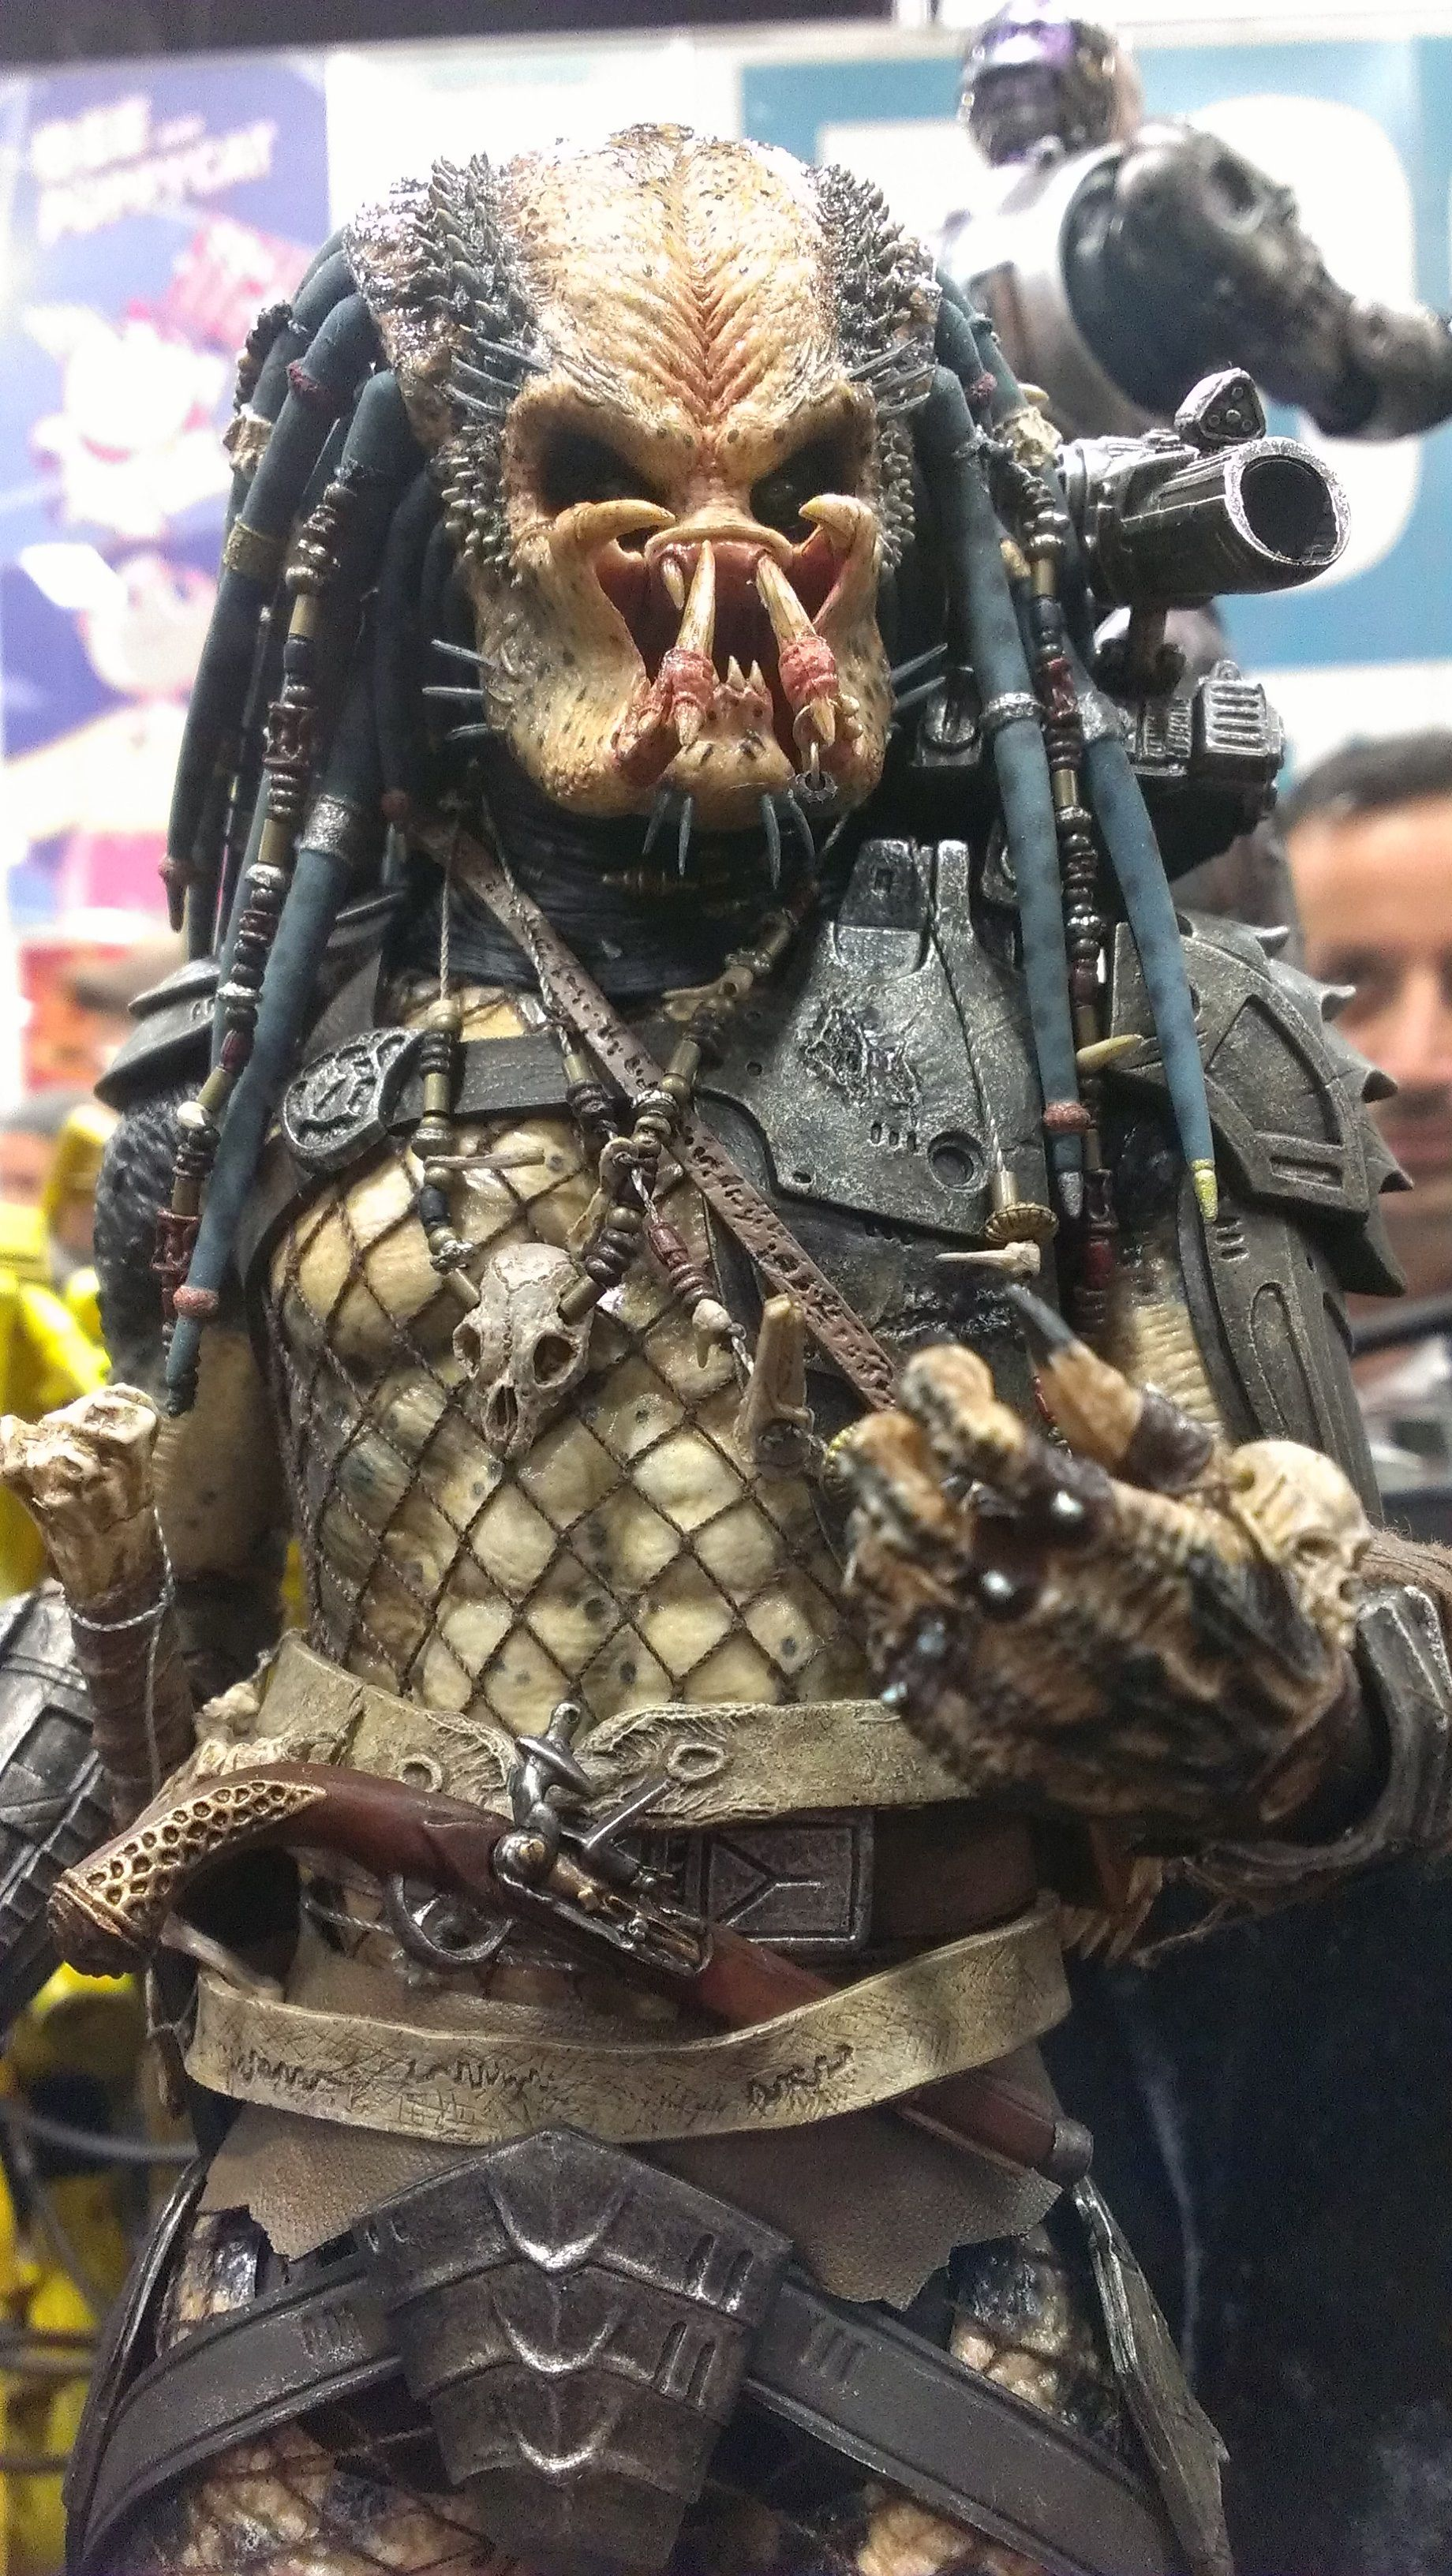 Another Predator figure - Sideshow Collectibles - San Diego Comic-Con 2014